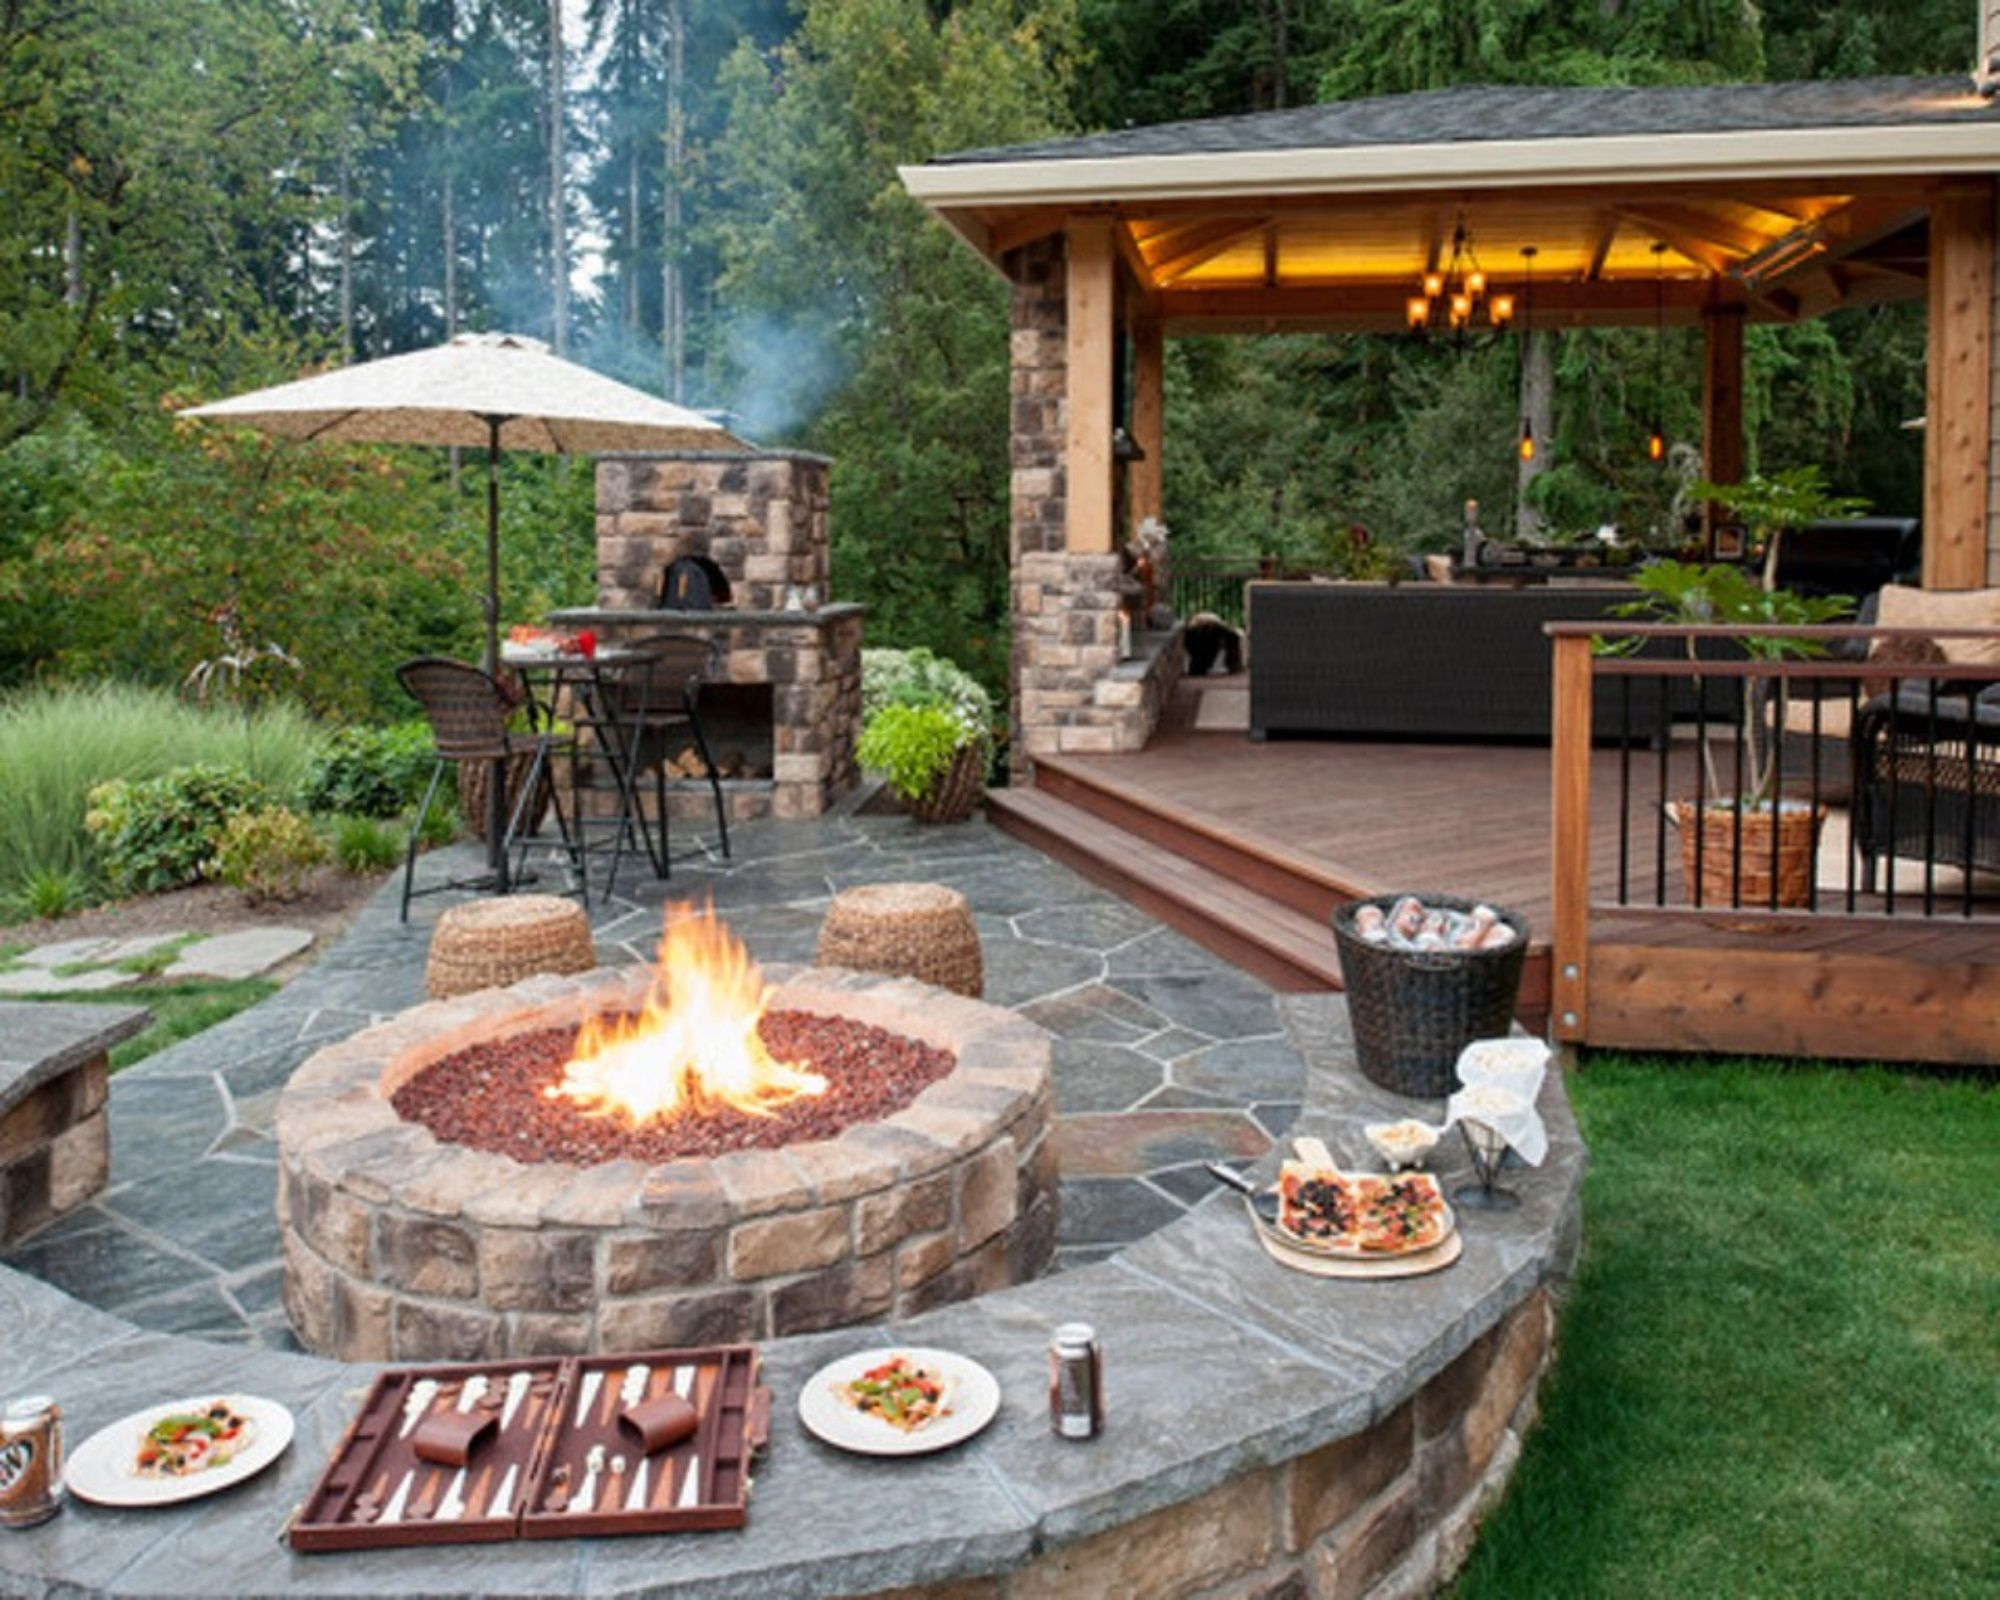 Outdoor Kitchen Design Ideas Backyard outdoor kitchen patio designs outdoor fire pit patio designs patio